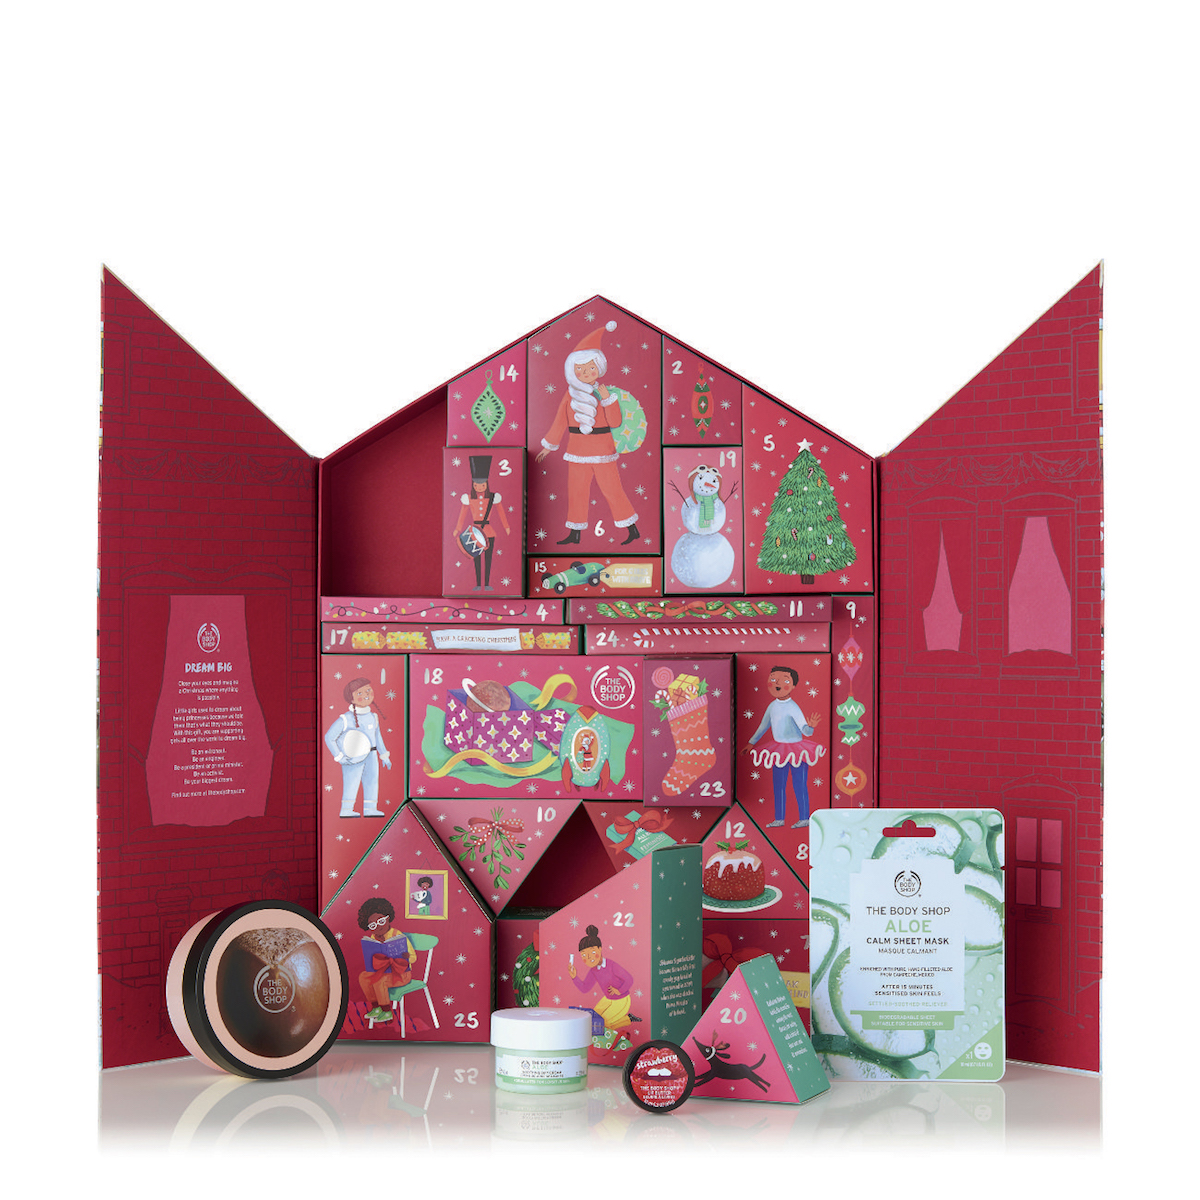 Adventskalender från The Body Shop